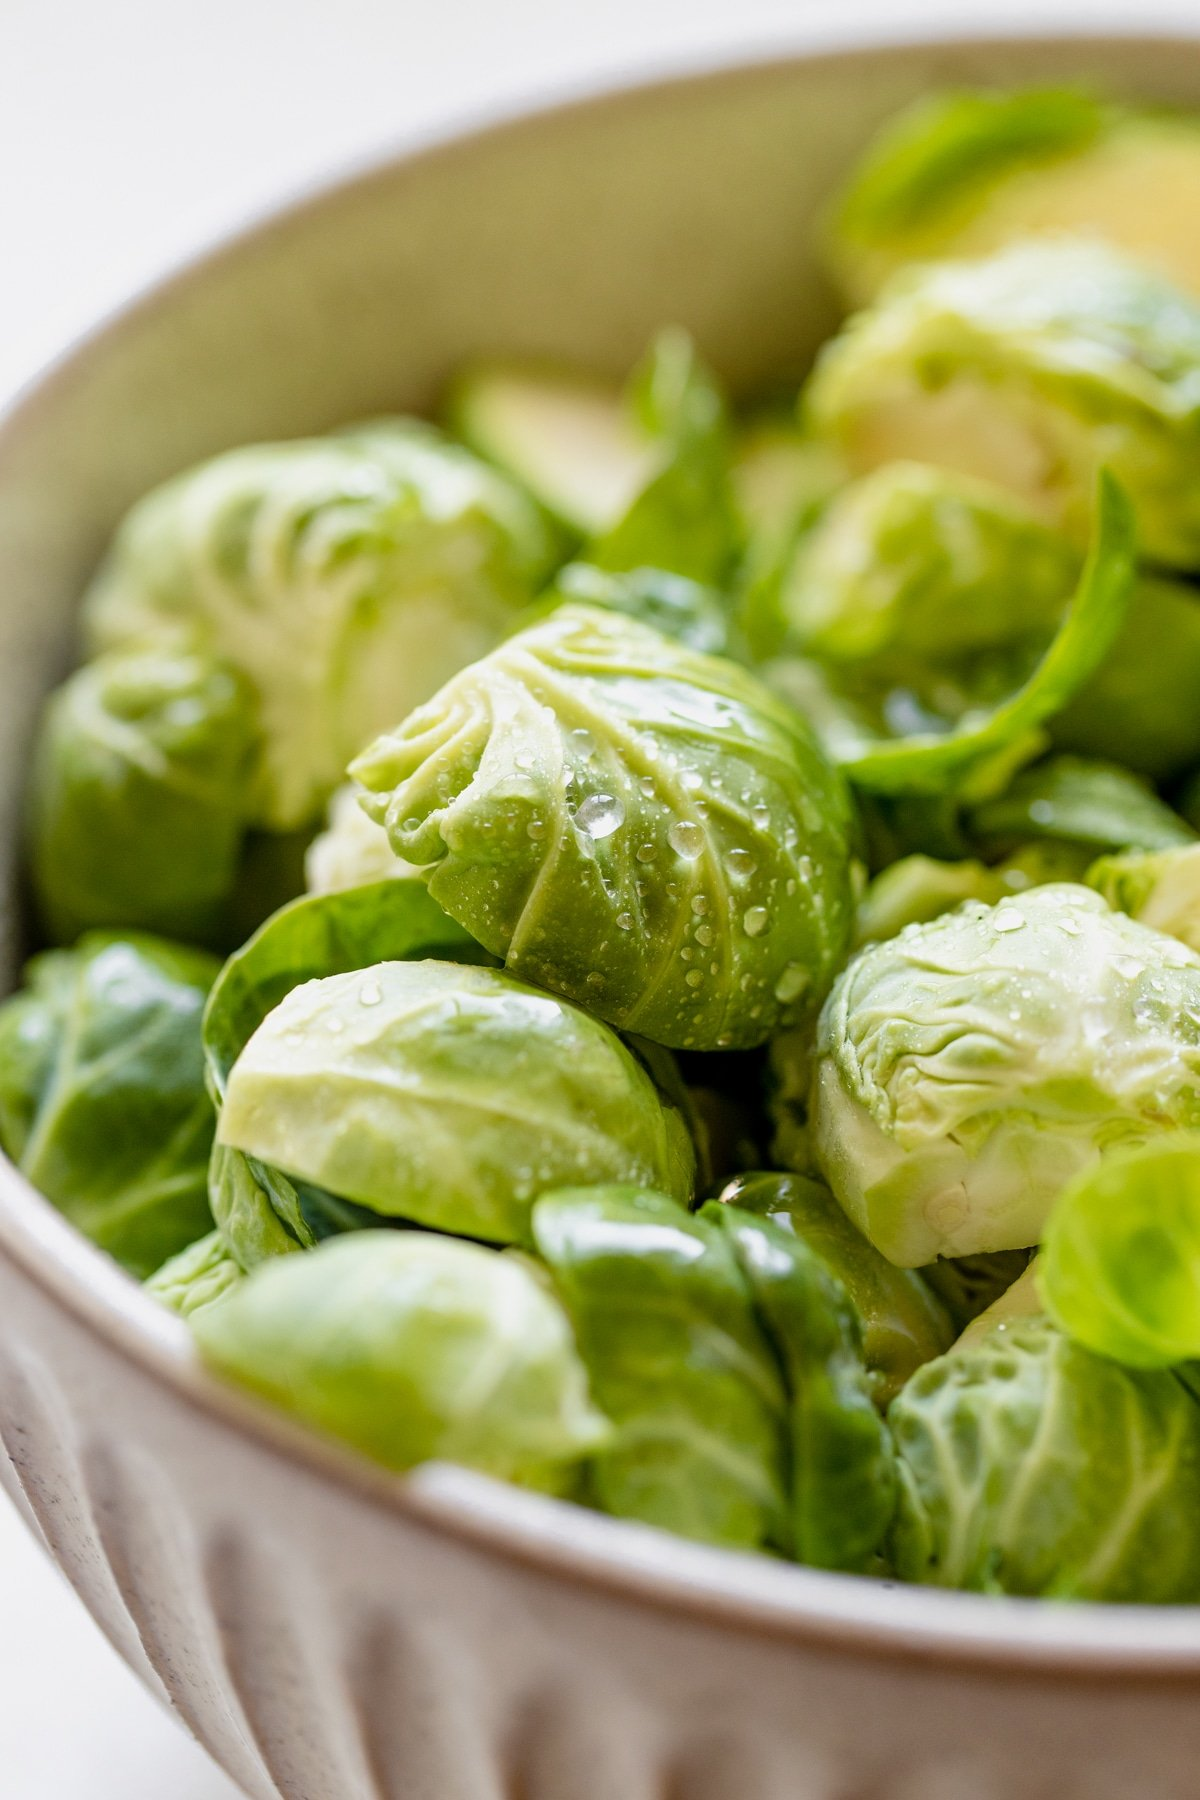 fresh brussels sprouts cut in half in a bowl